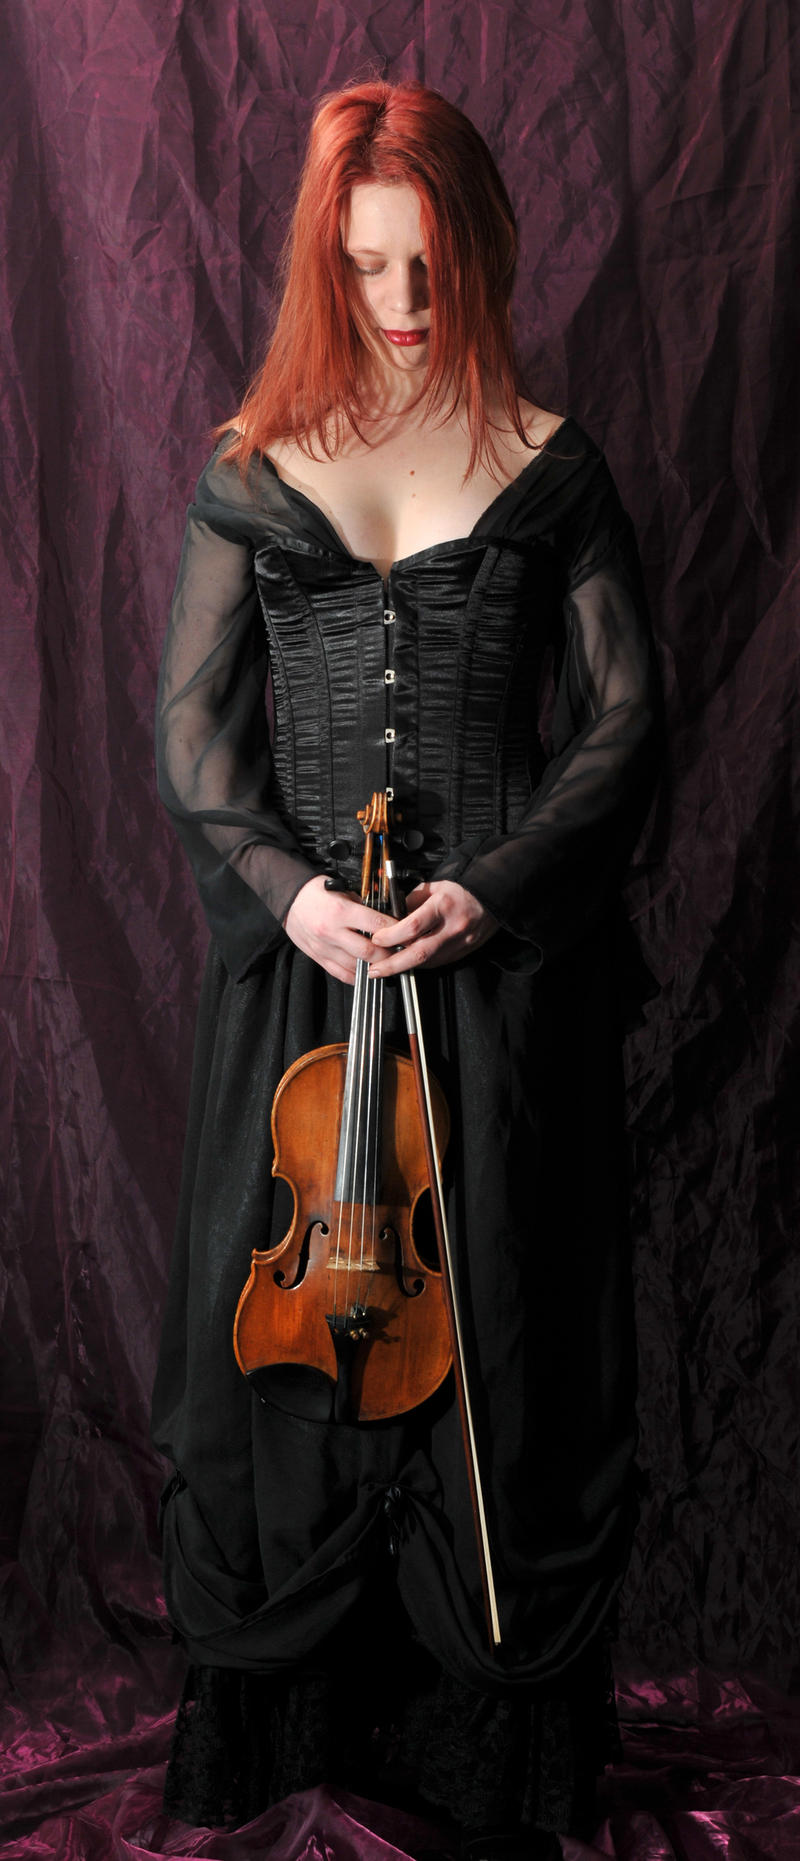 The violinist 11 by Meltys-stock